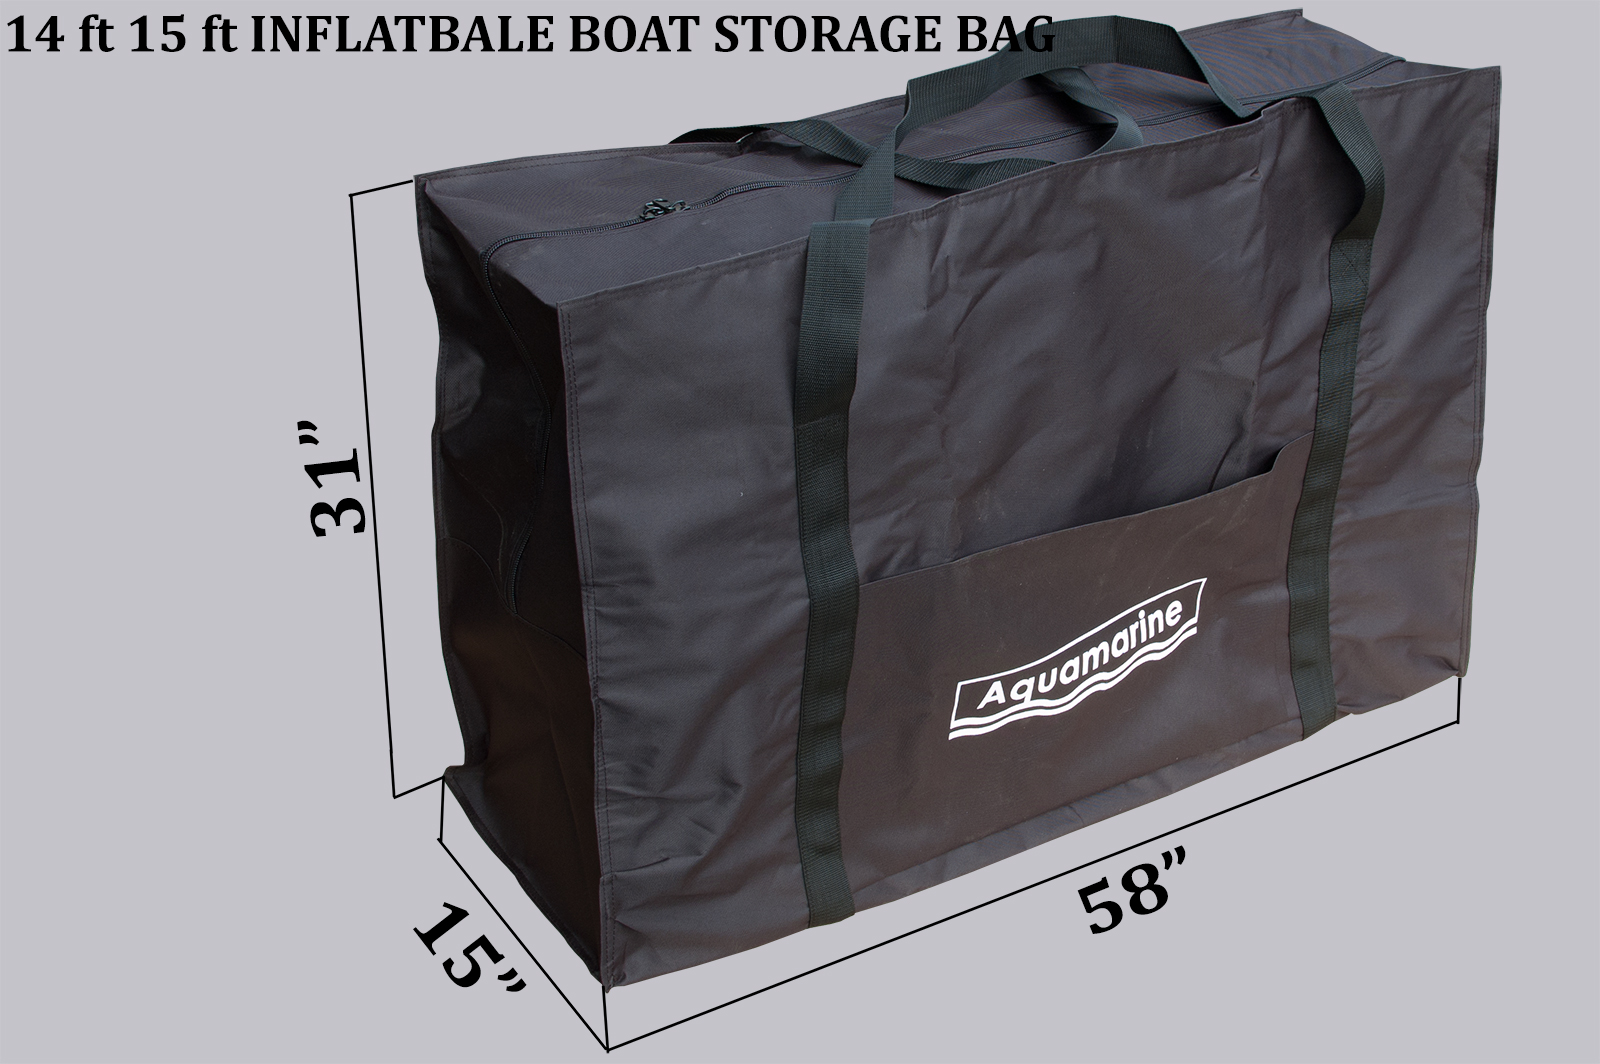 Storage Bag For 14 Ft 15 Ft Inflatable Boat